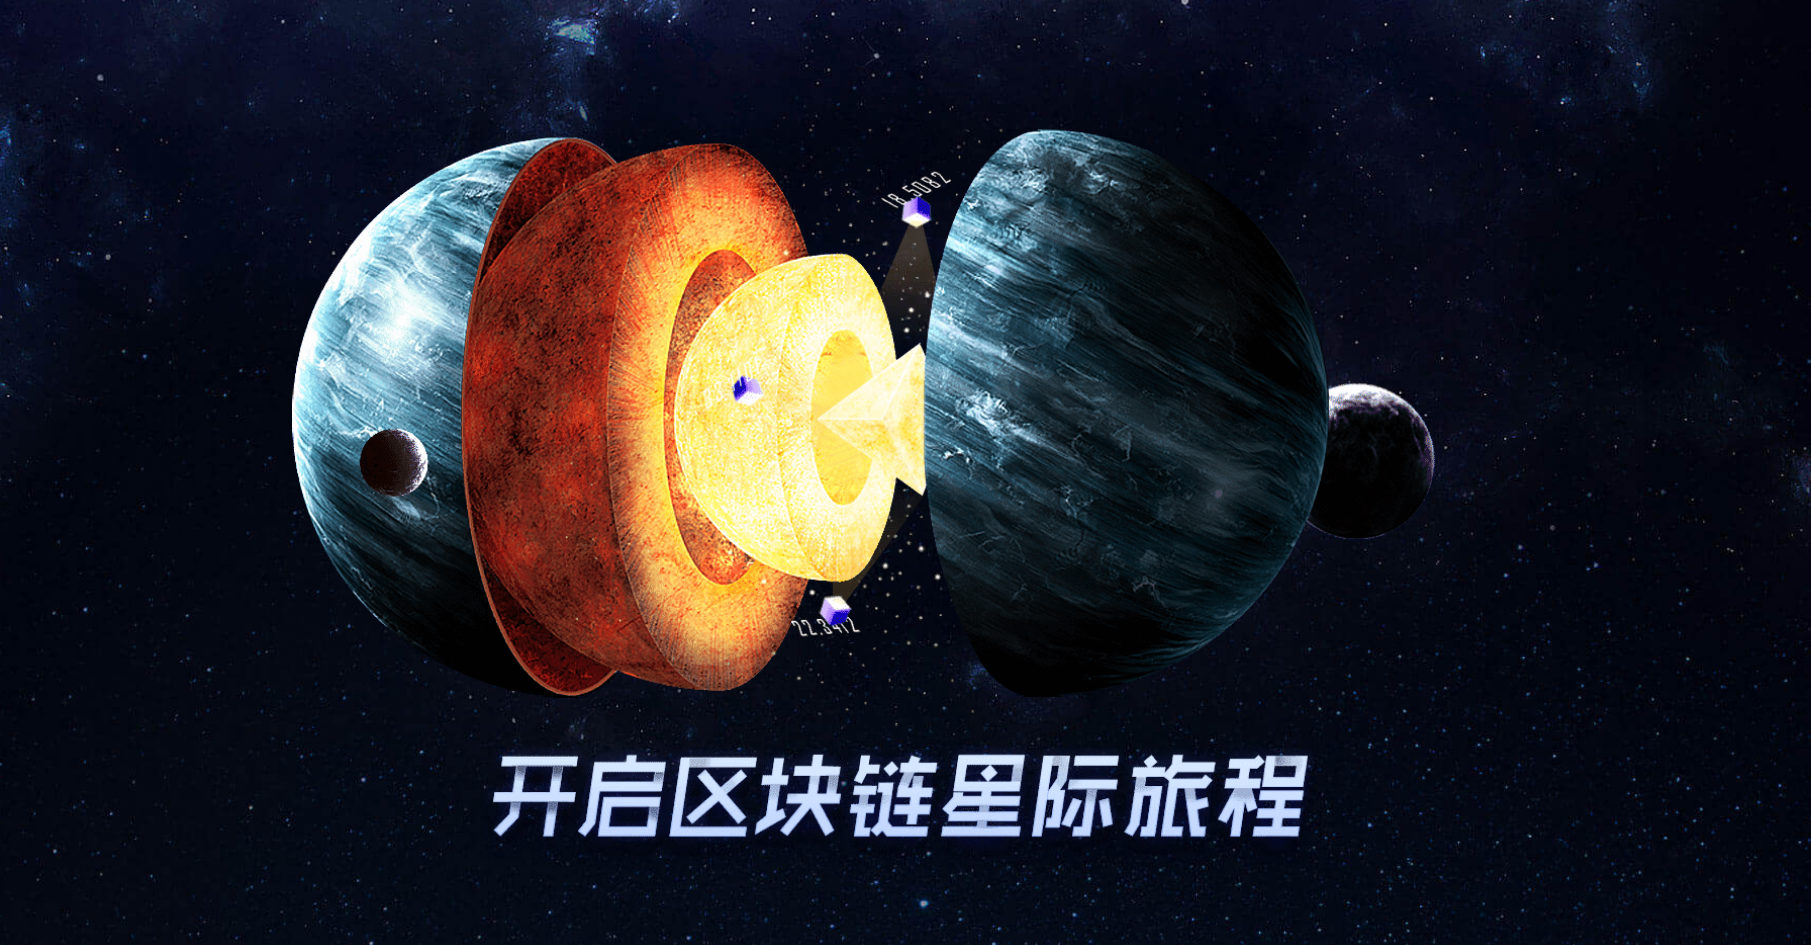 the universe game baidu